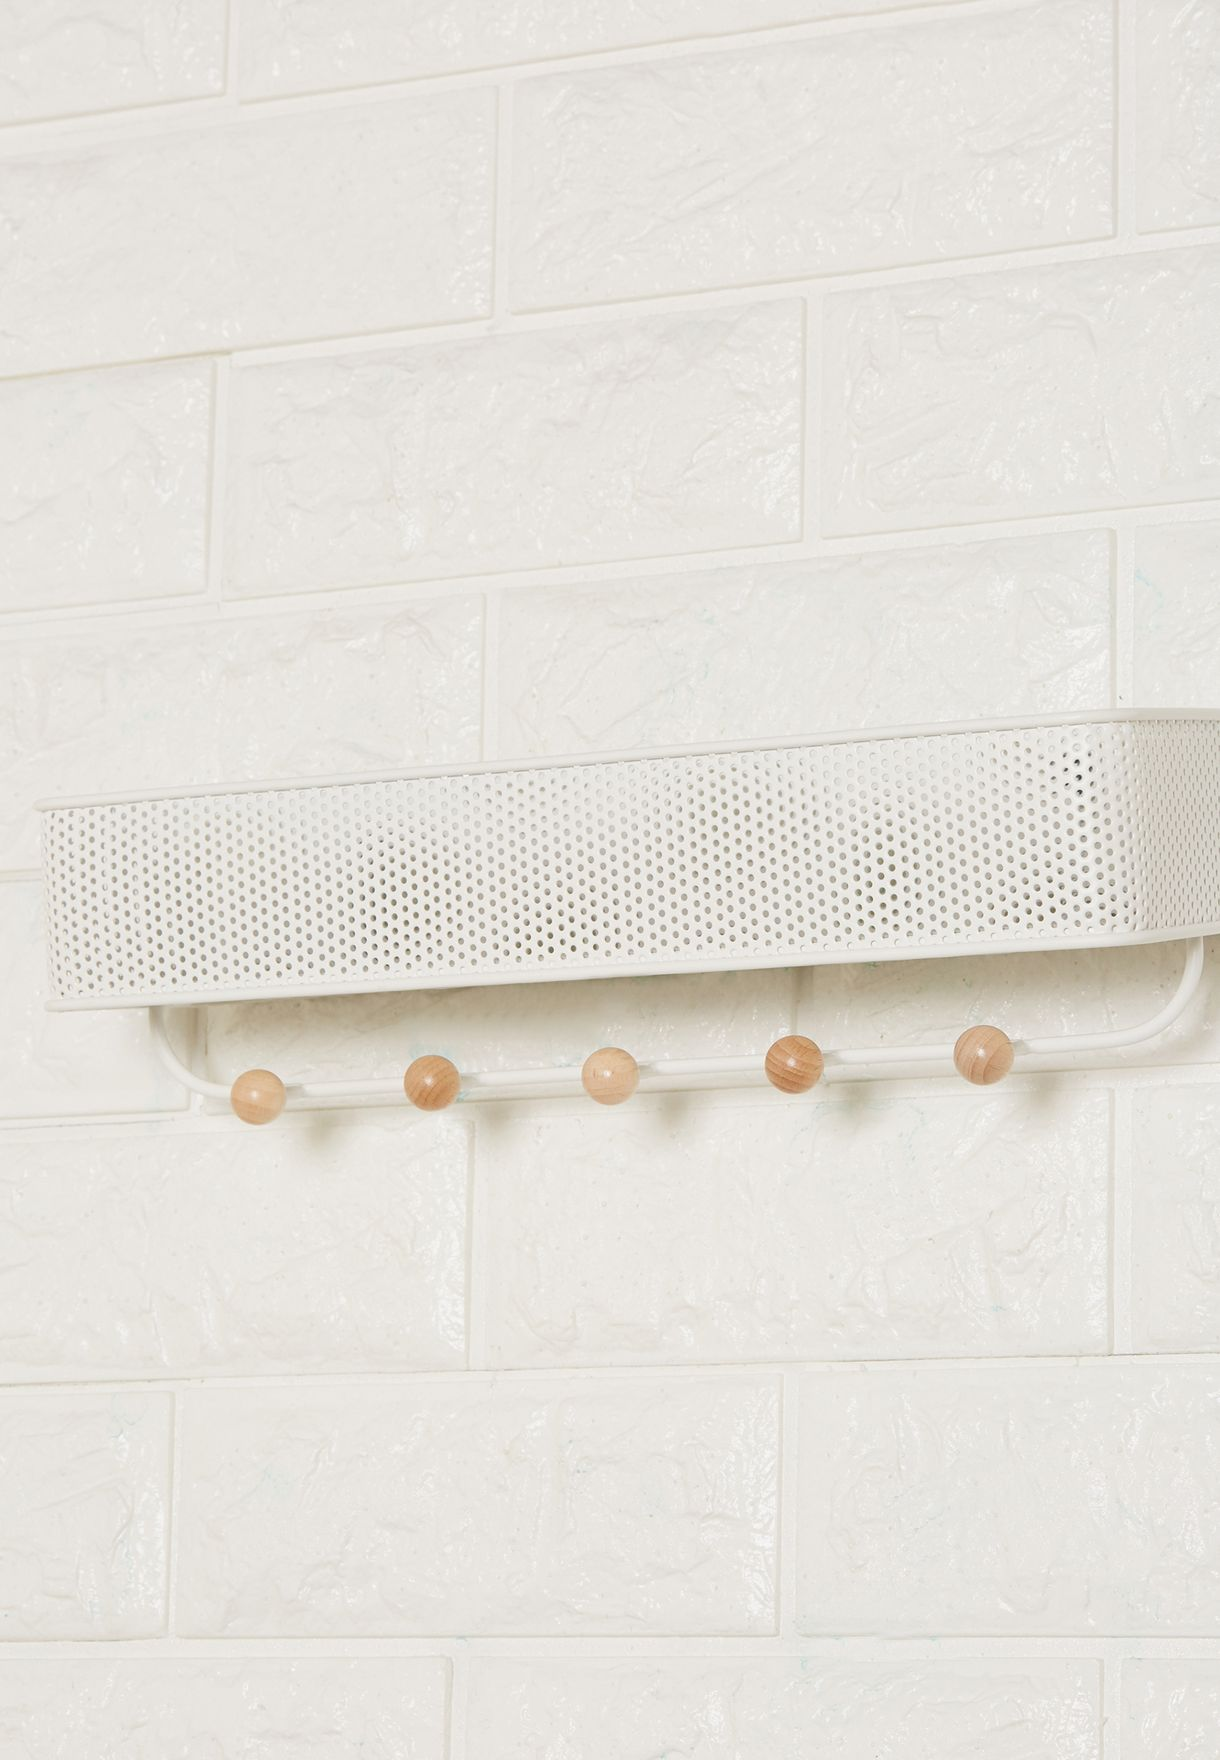 Estique Wall Organizer With Hooks